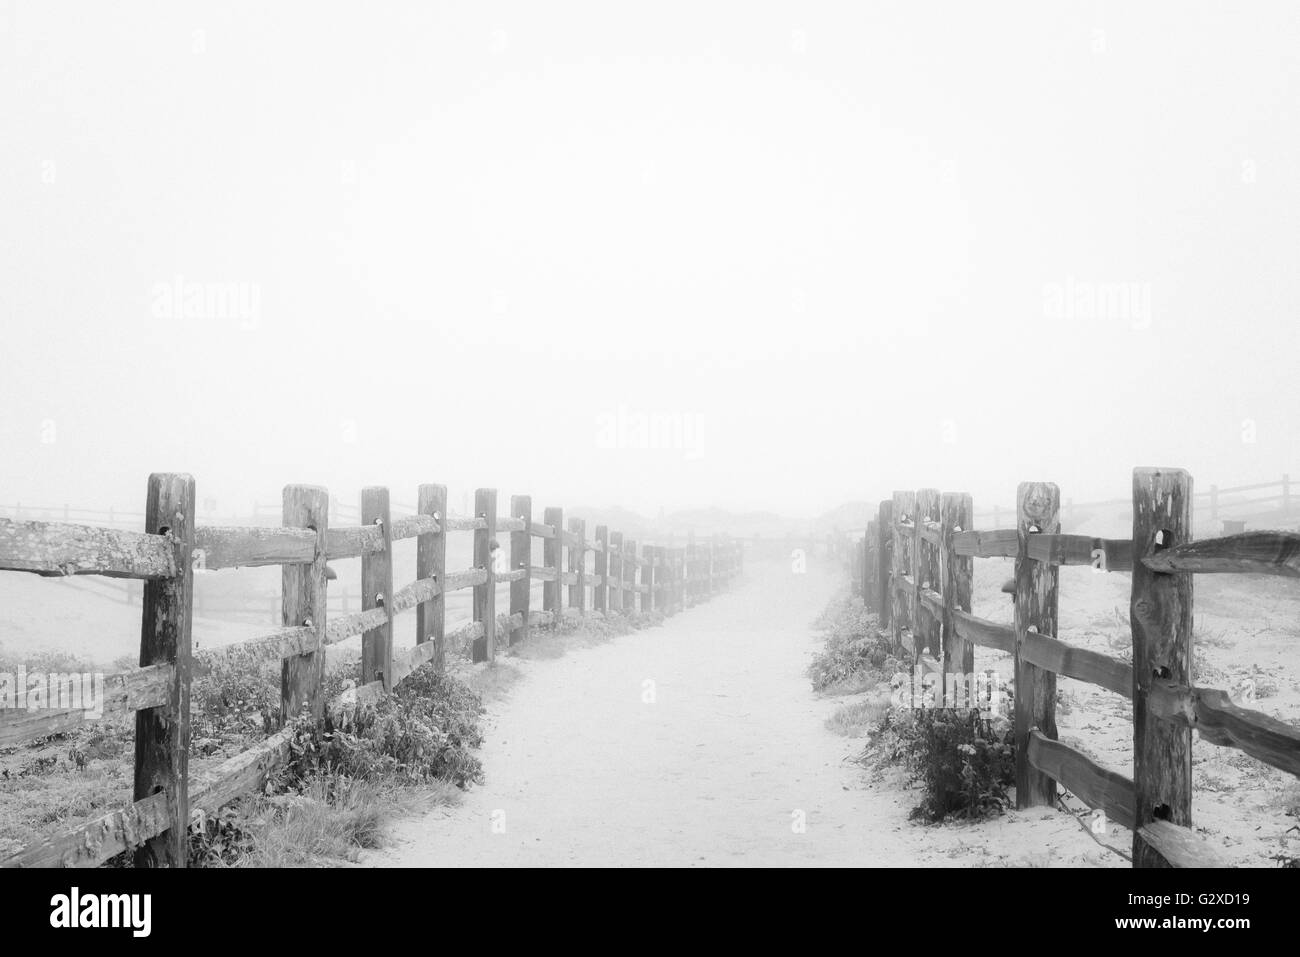 Into the fog. - Stock Image